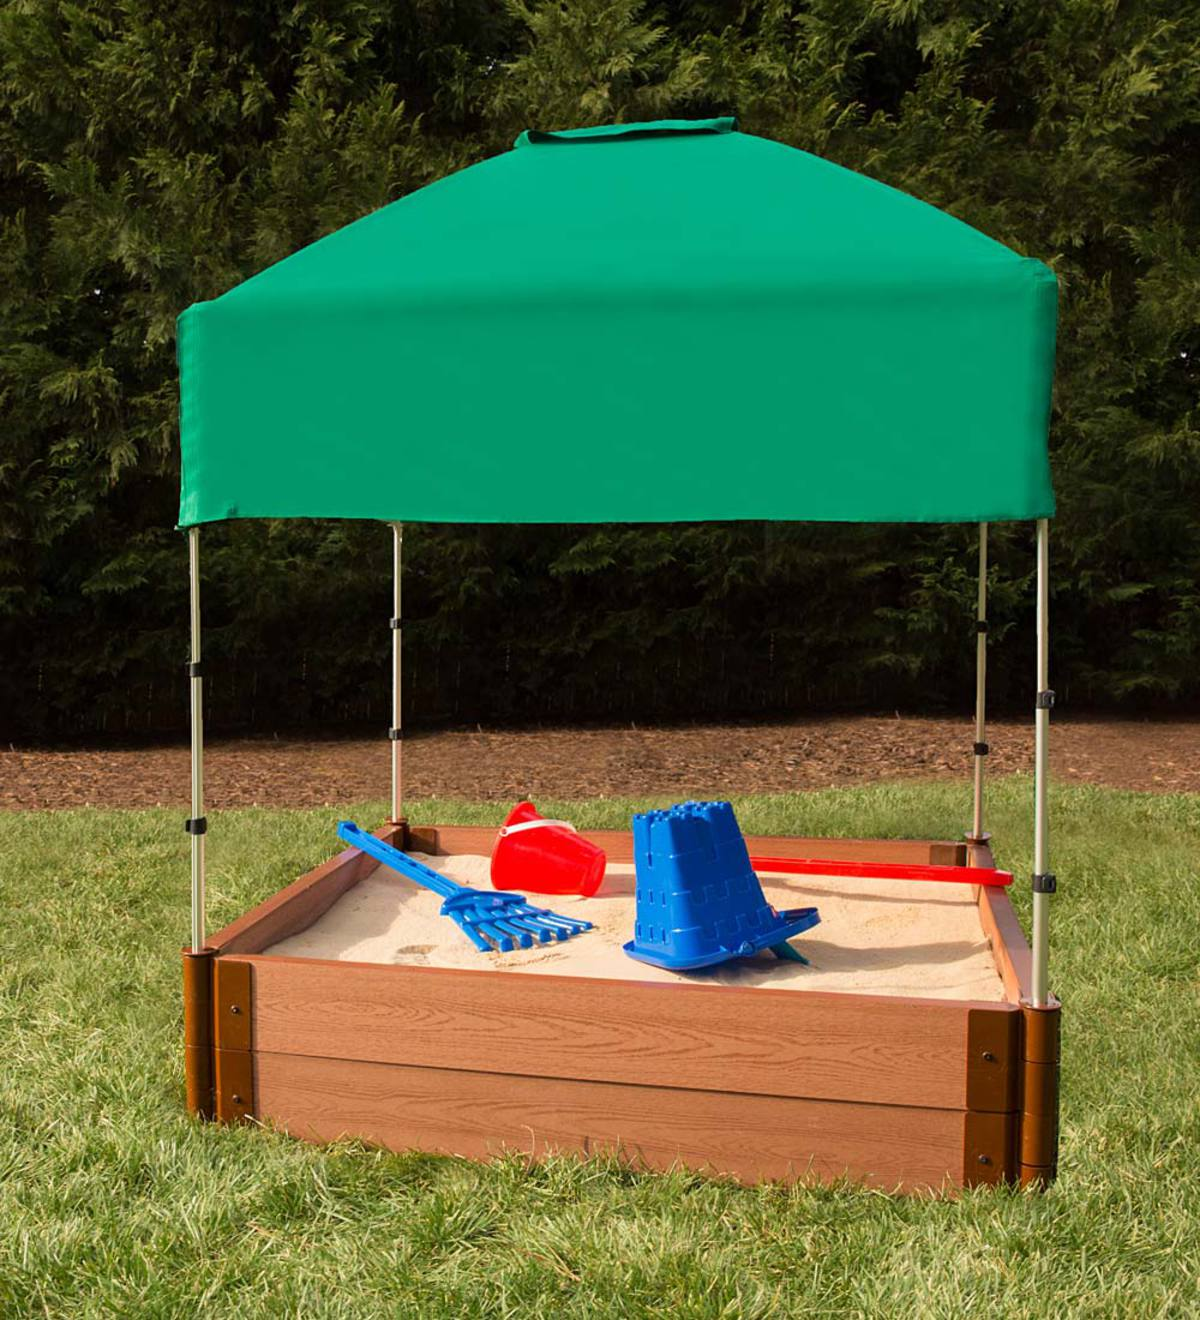 Double-Level Square Sandbox with Canopy Cover